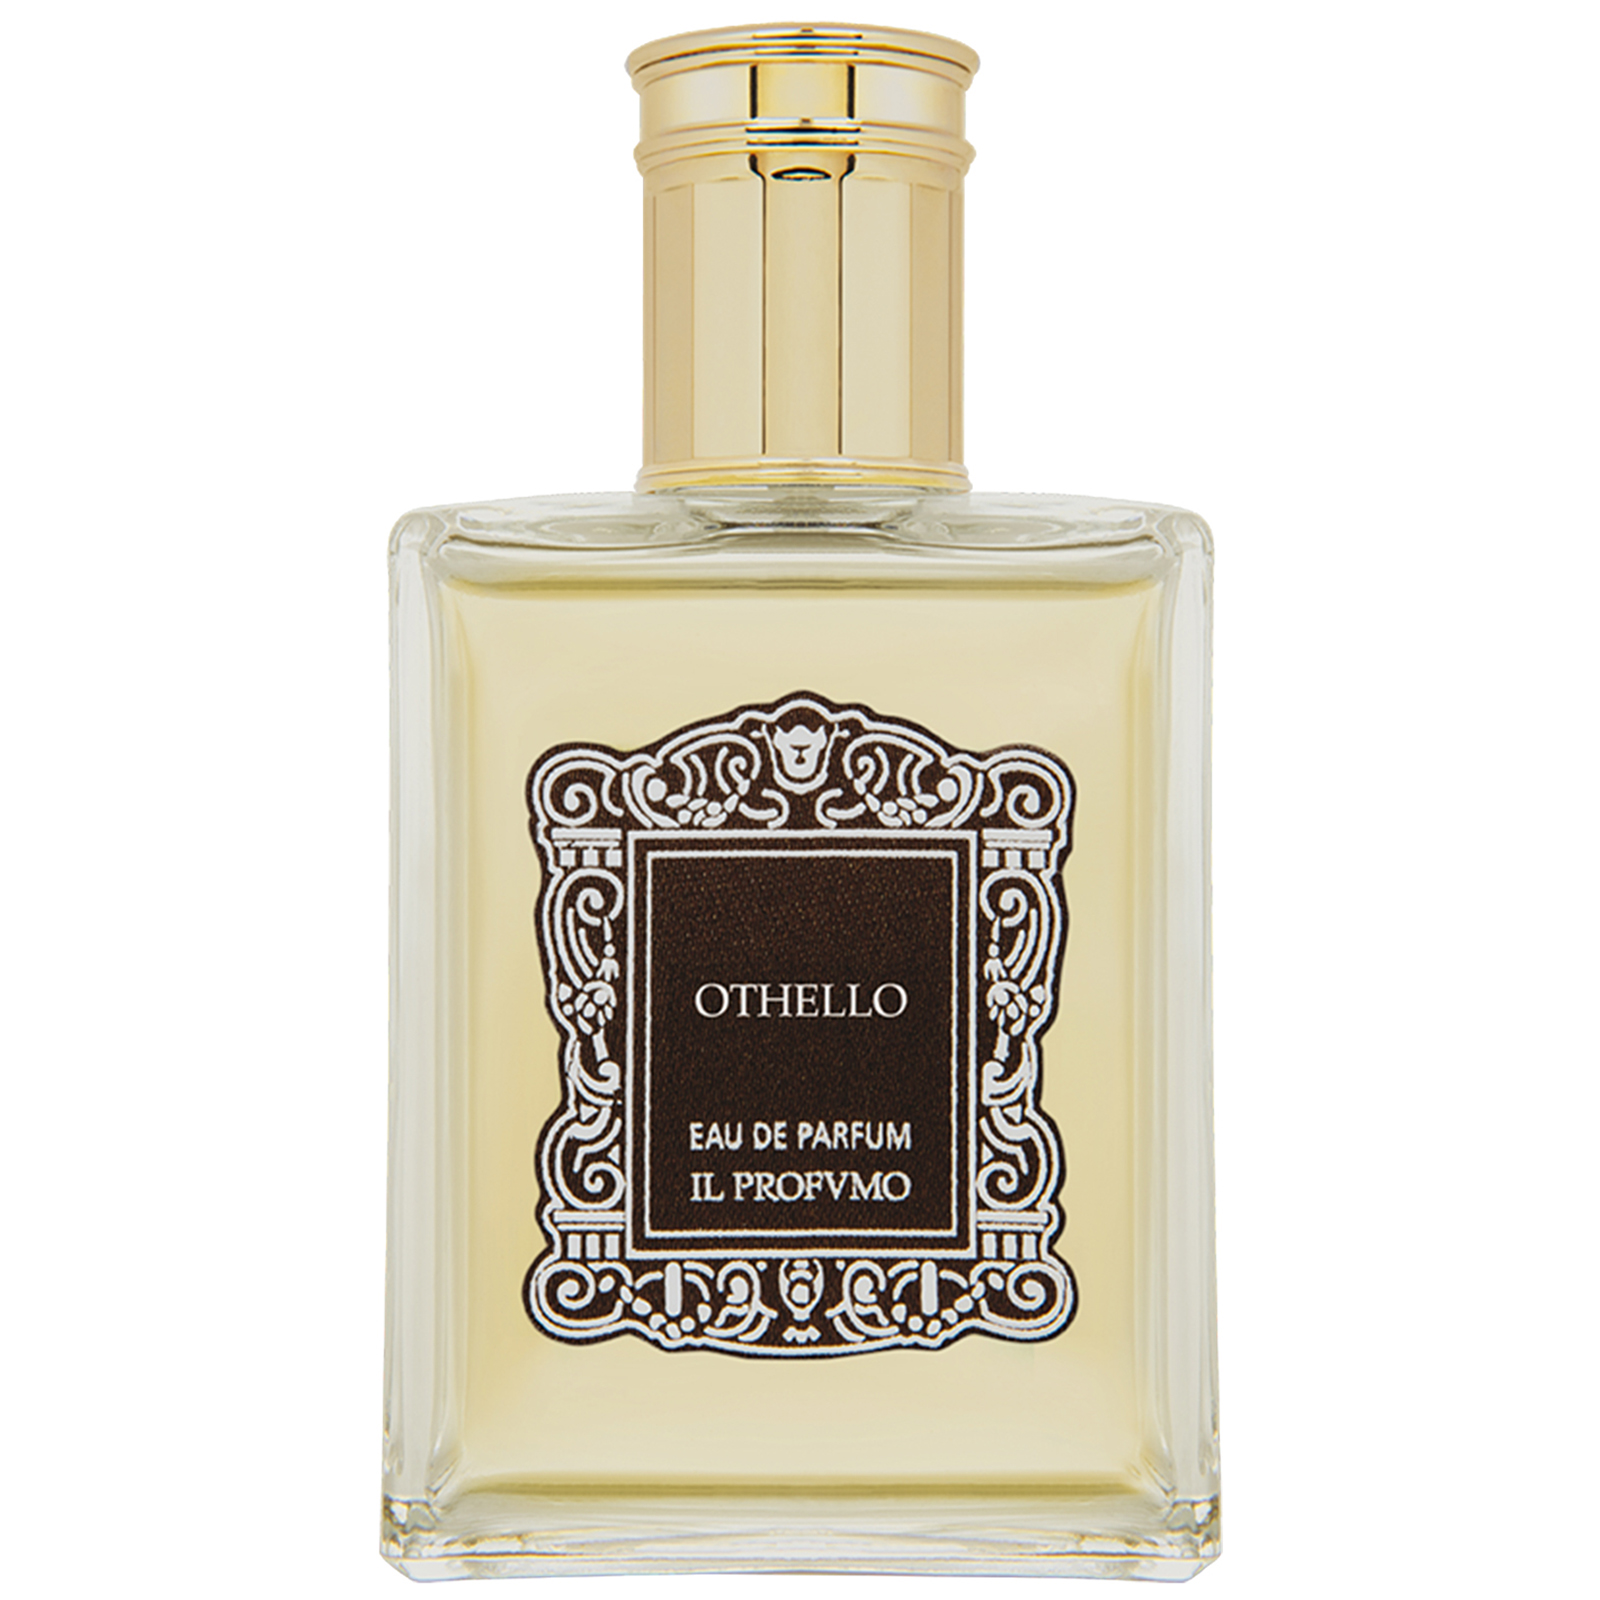 Othello profumo eau de parfum 100 ml